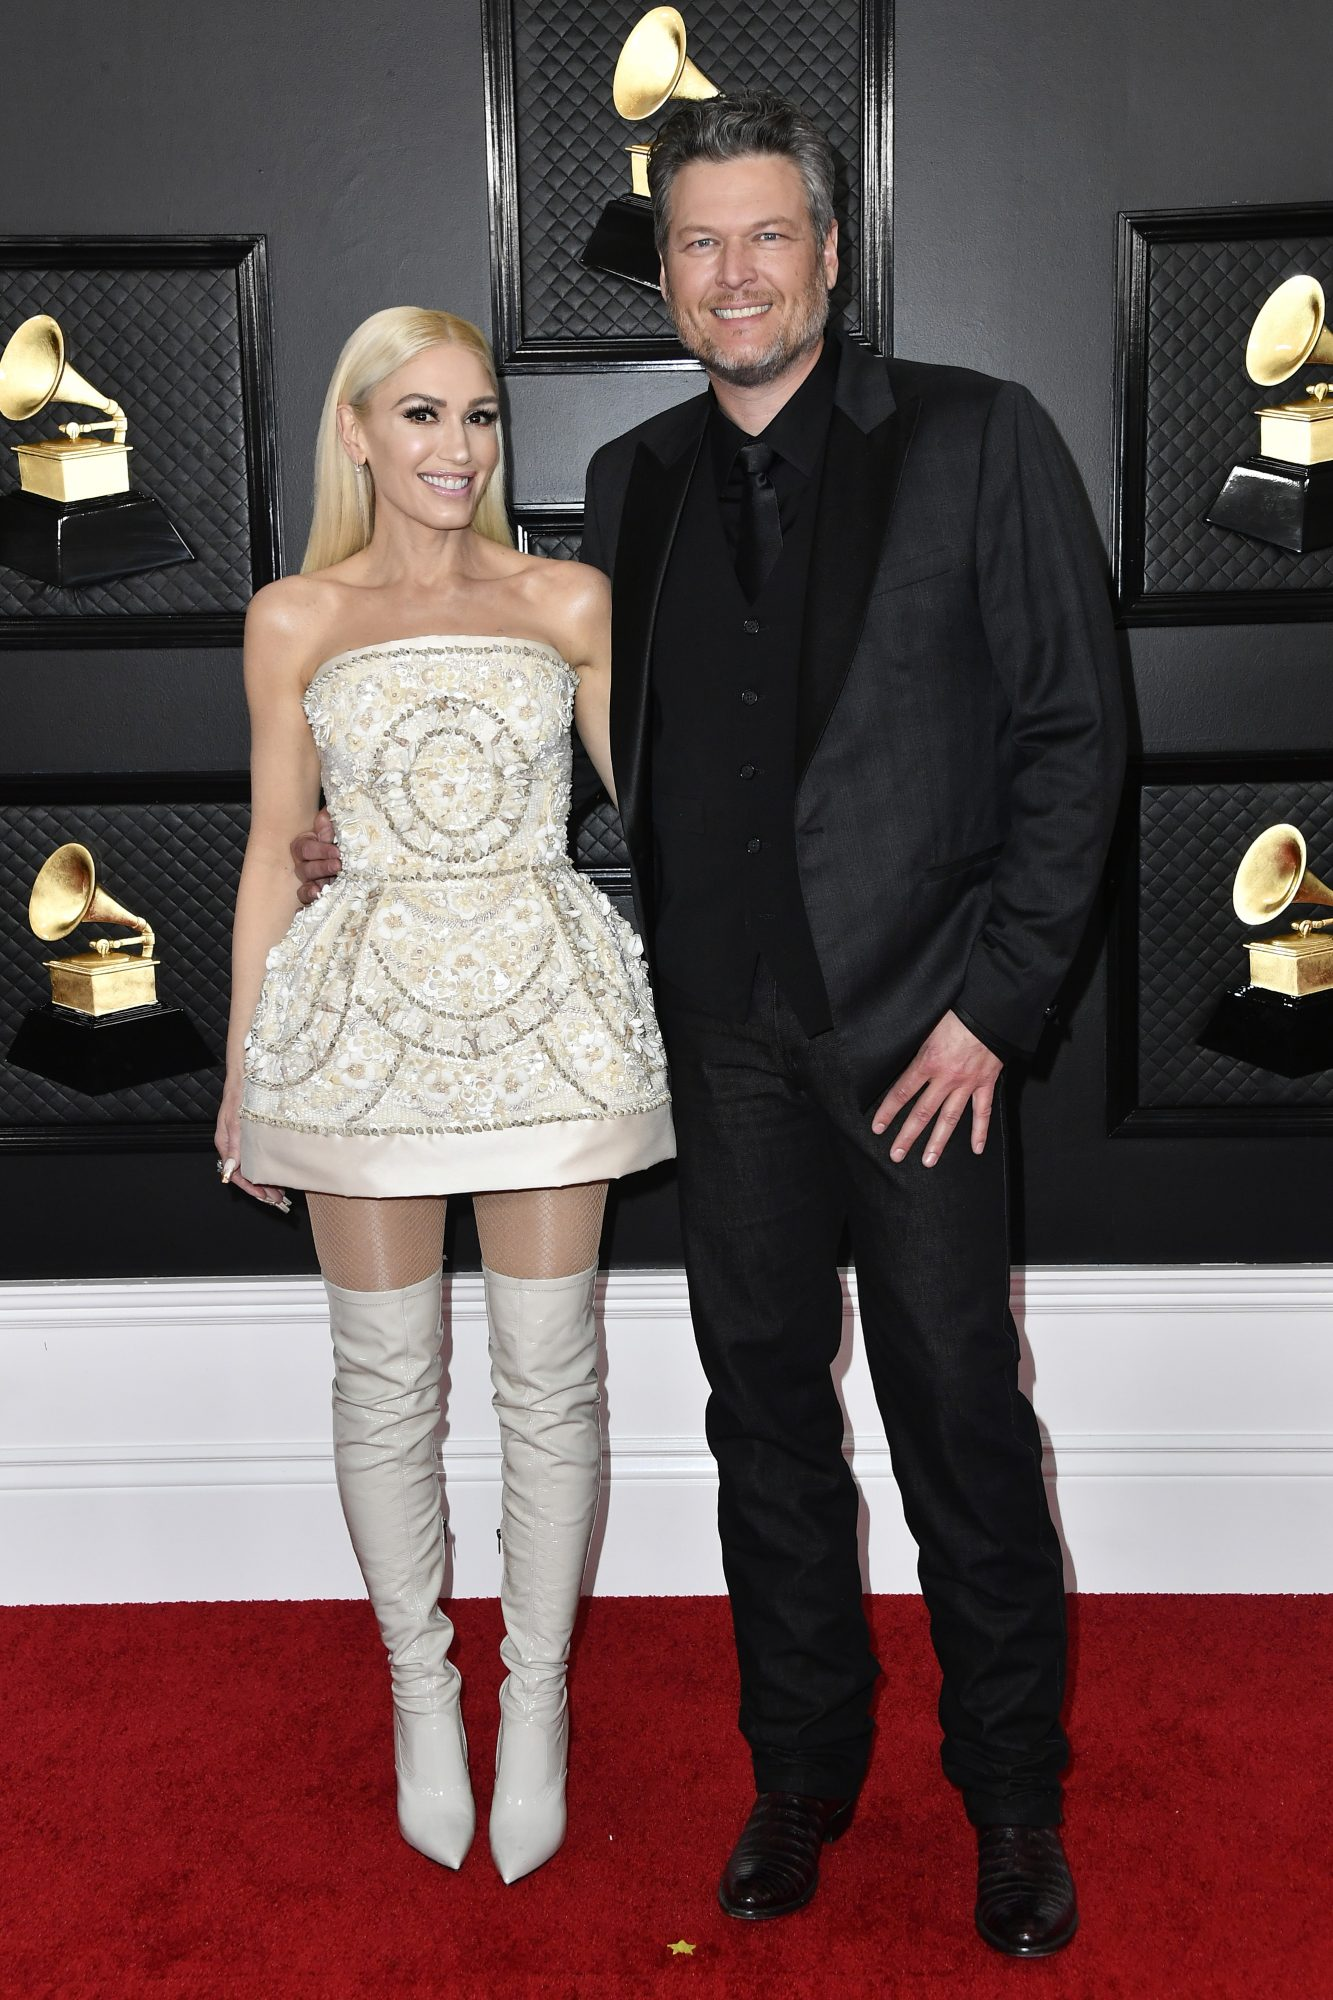 gwen stefani and blake shelton smiling on the red carpet of the 62nd annual Grammy Awards